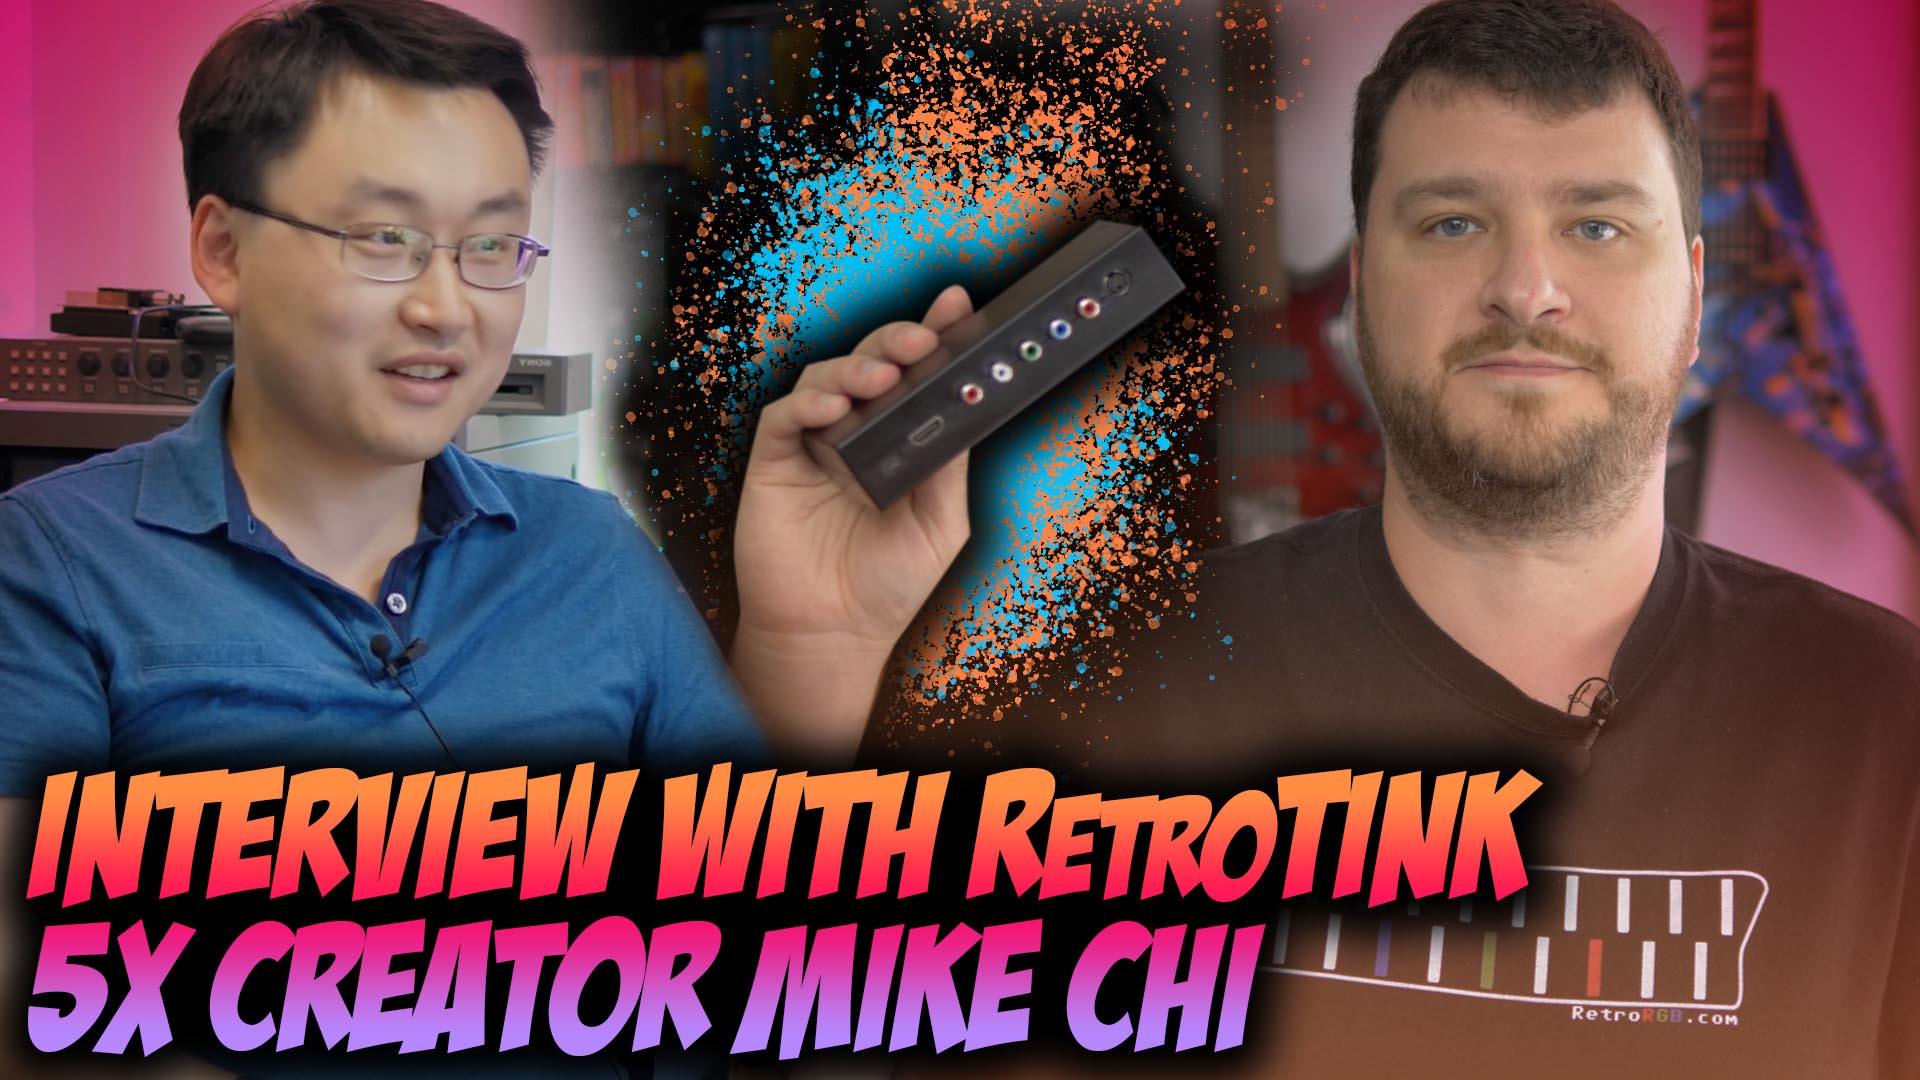 Interview with RetroTINK 5x Creator: Mike Chi